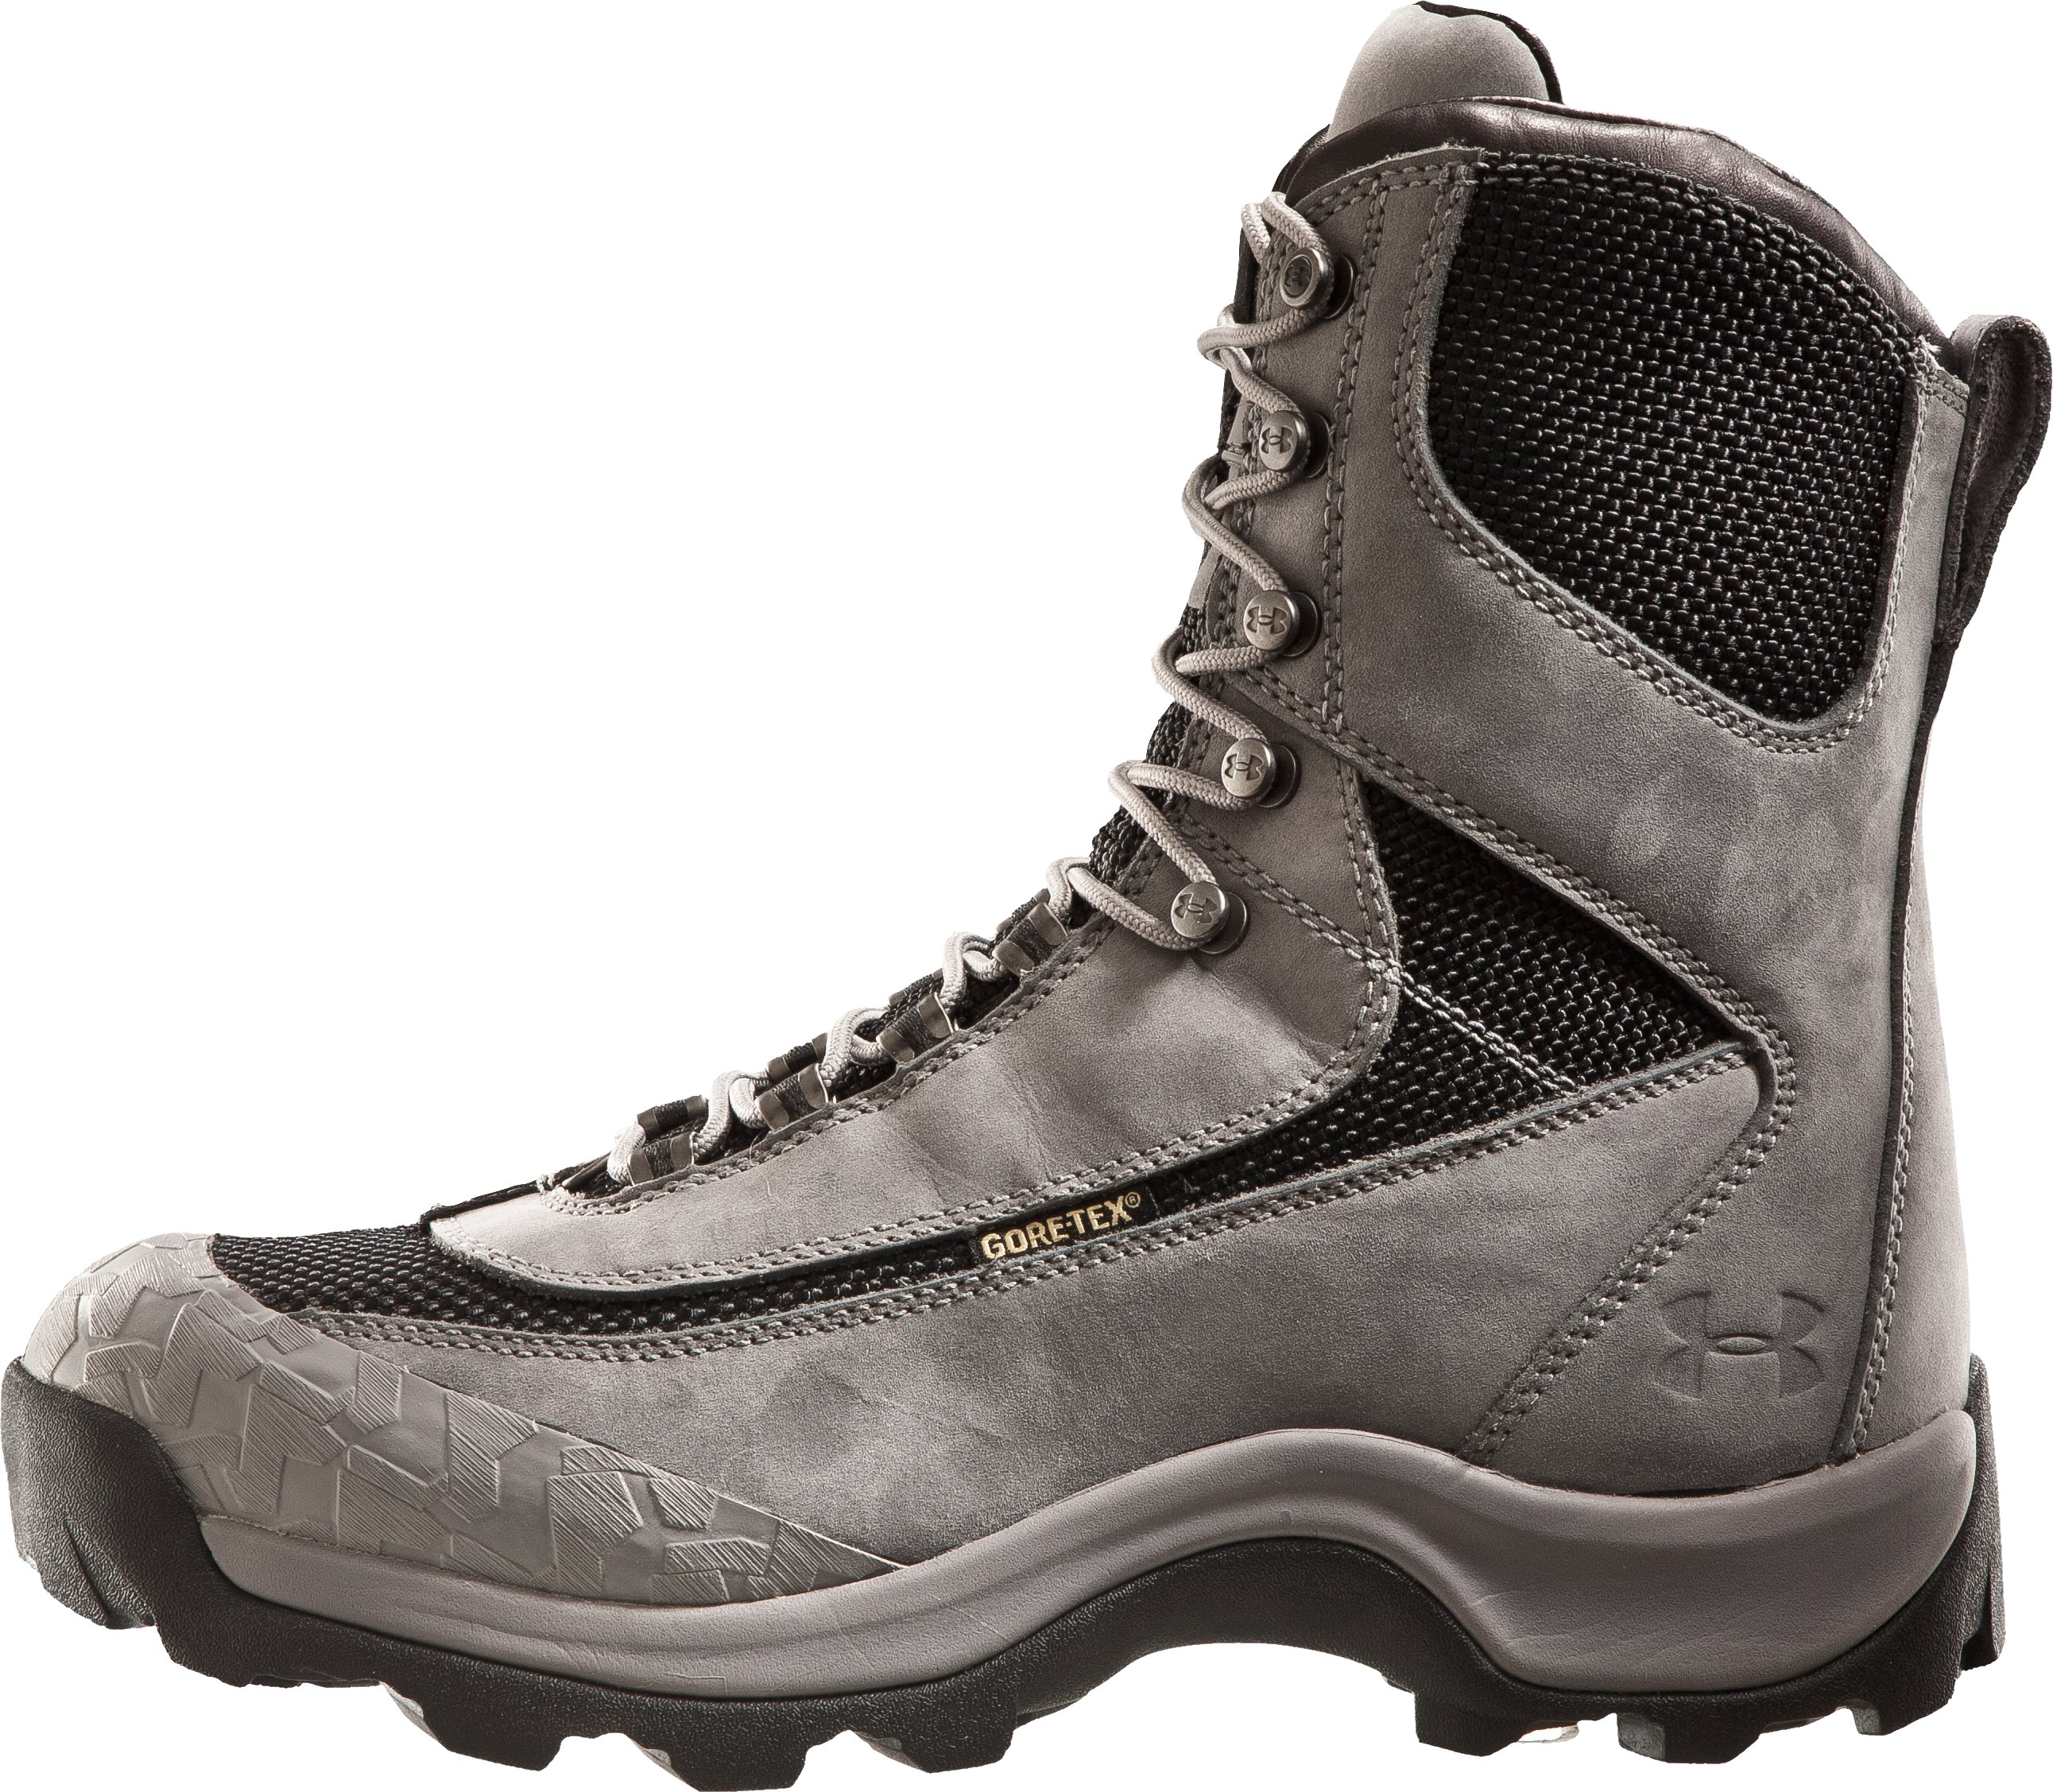 "Men's Ridge Reaper™ 8.5"" Hunting Boots, Steel"